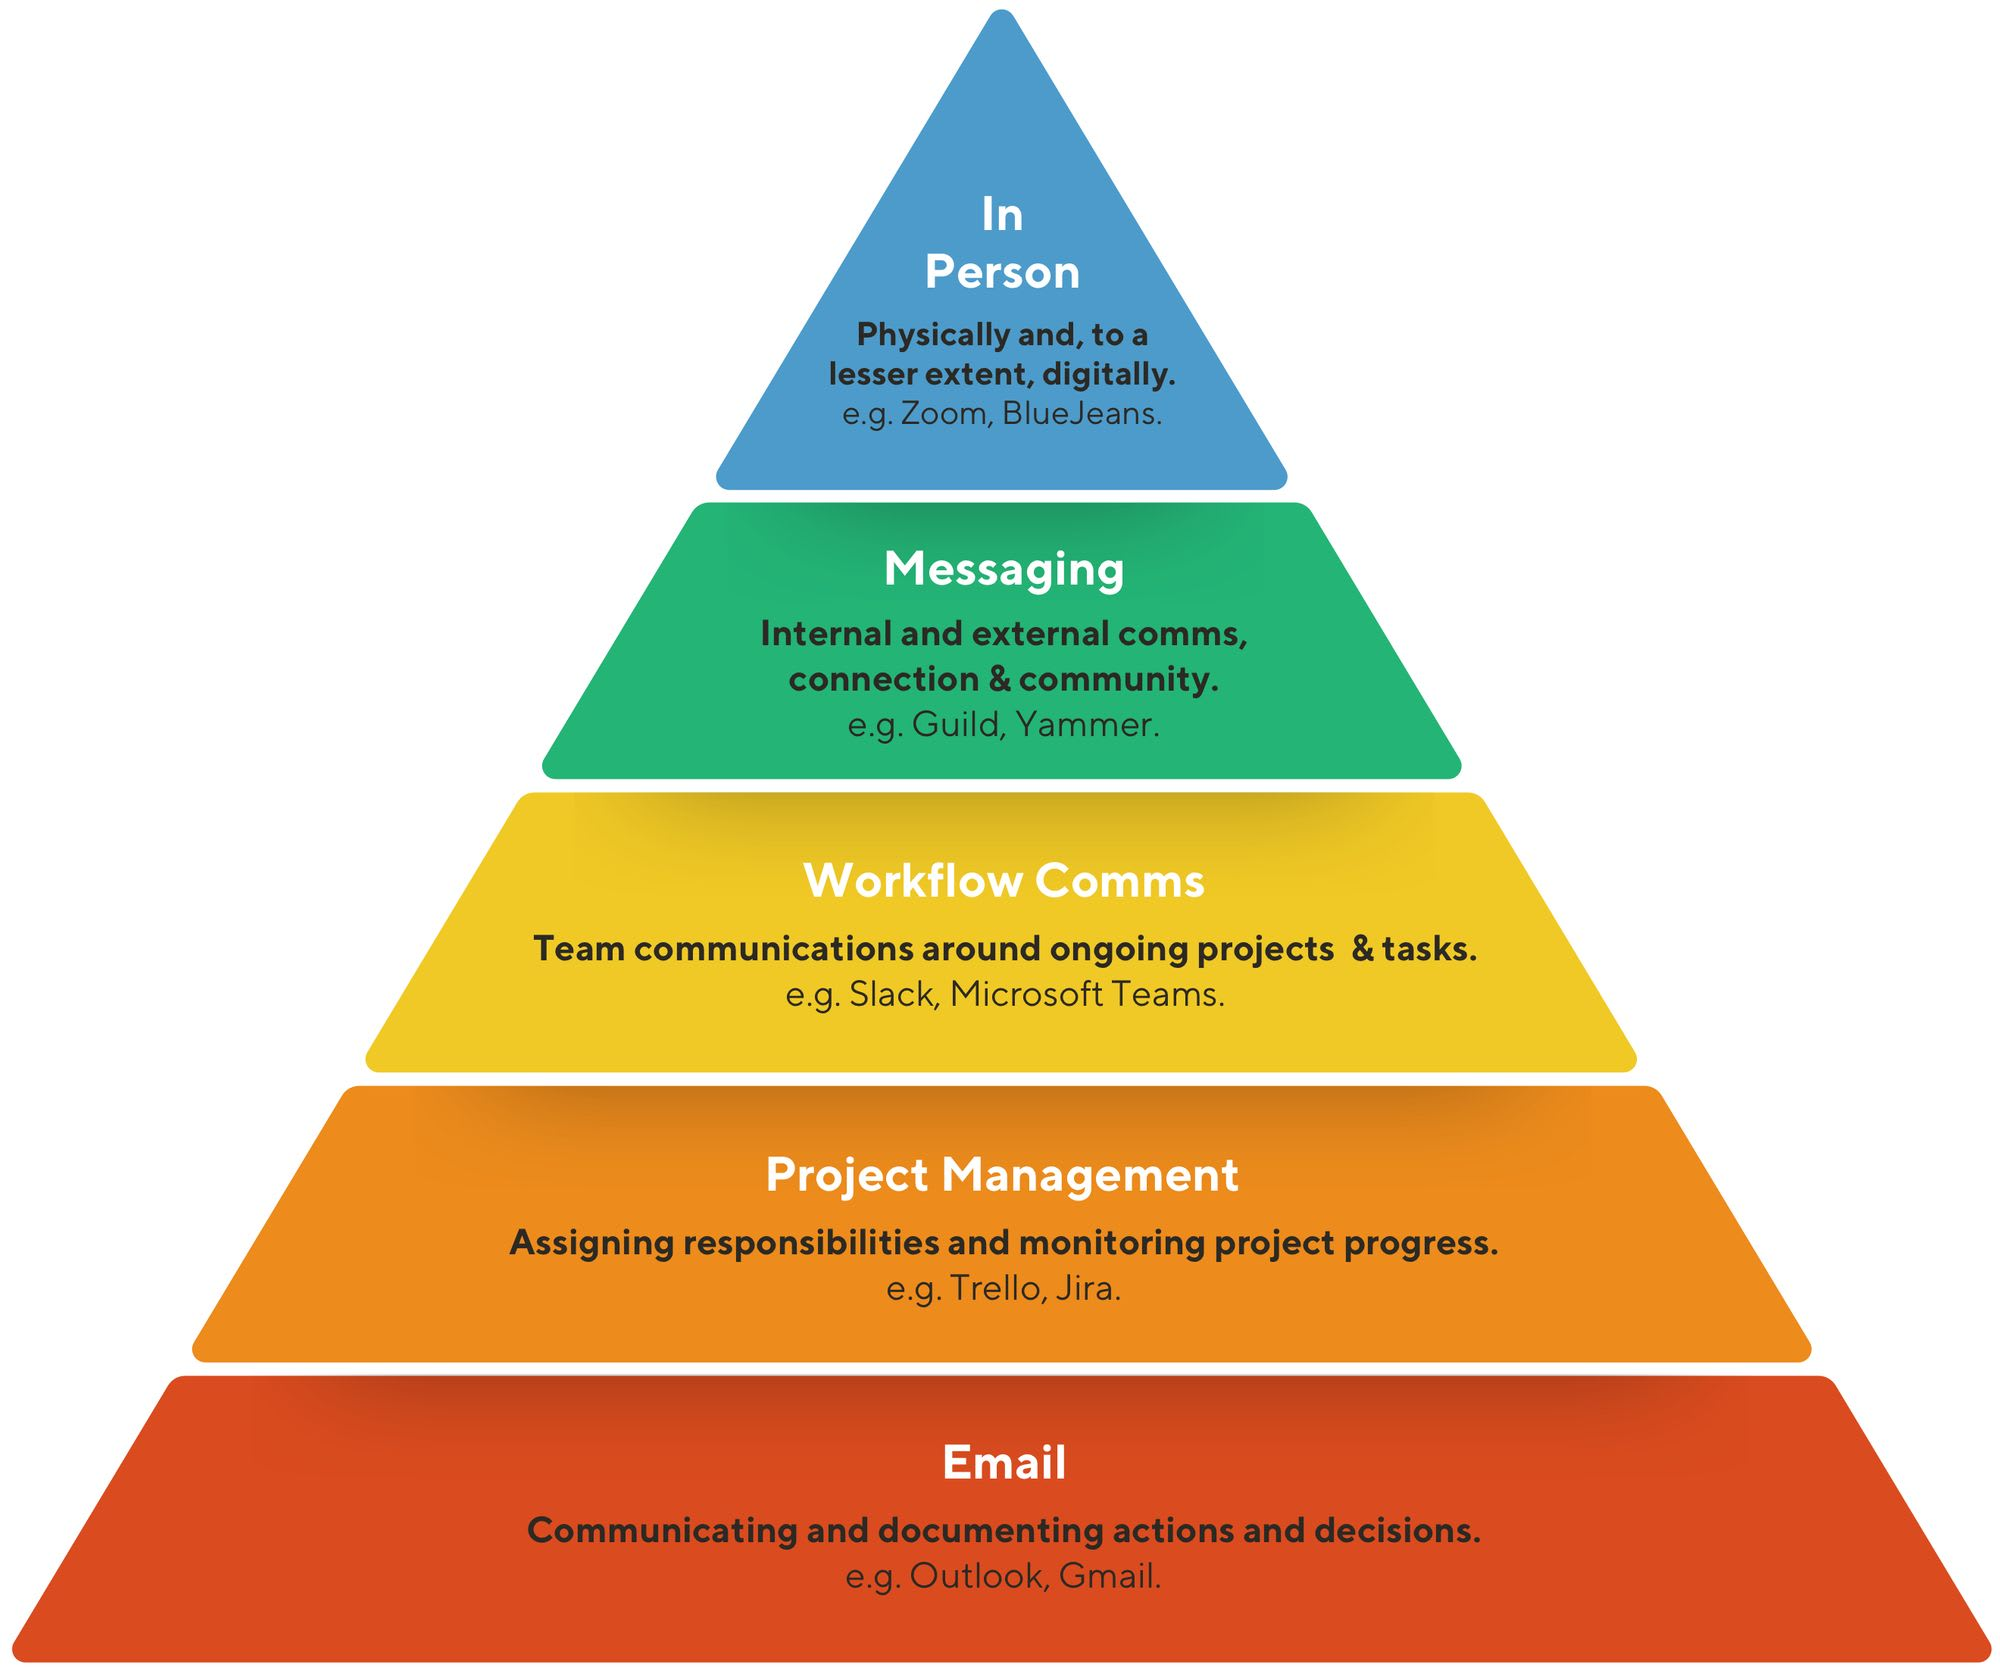 Guild's Hierarchy of Messaging Model from 'Mastering Workplace Messaging' report